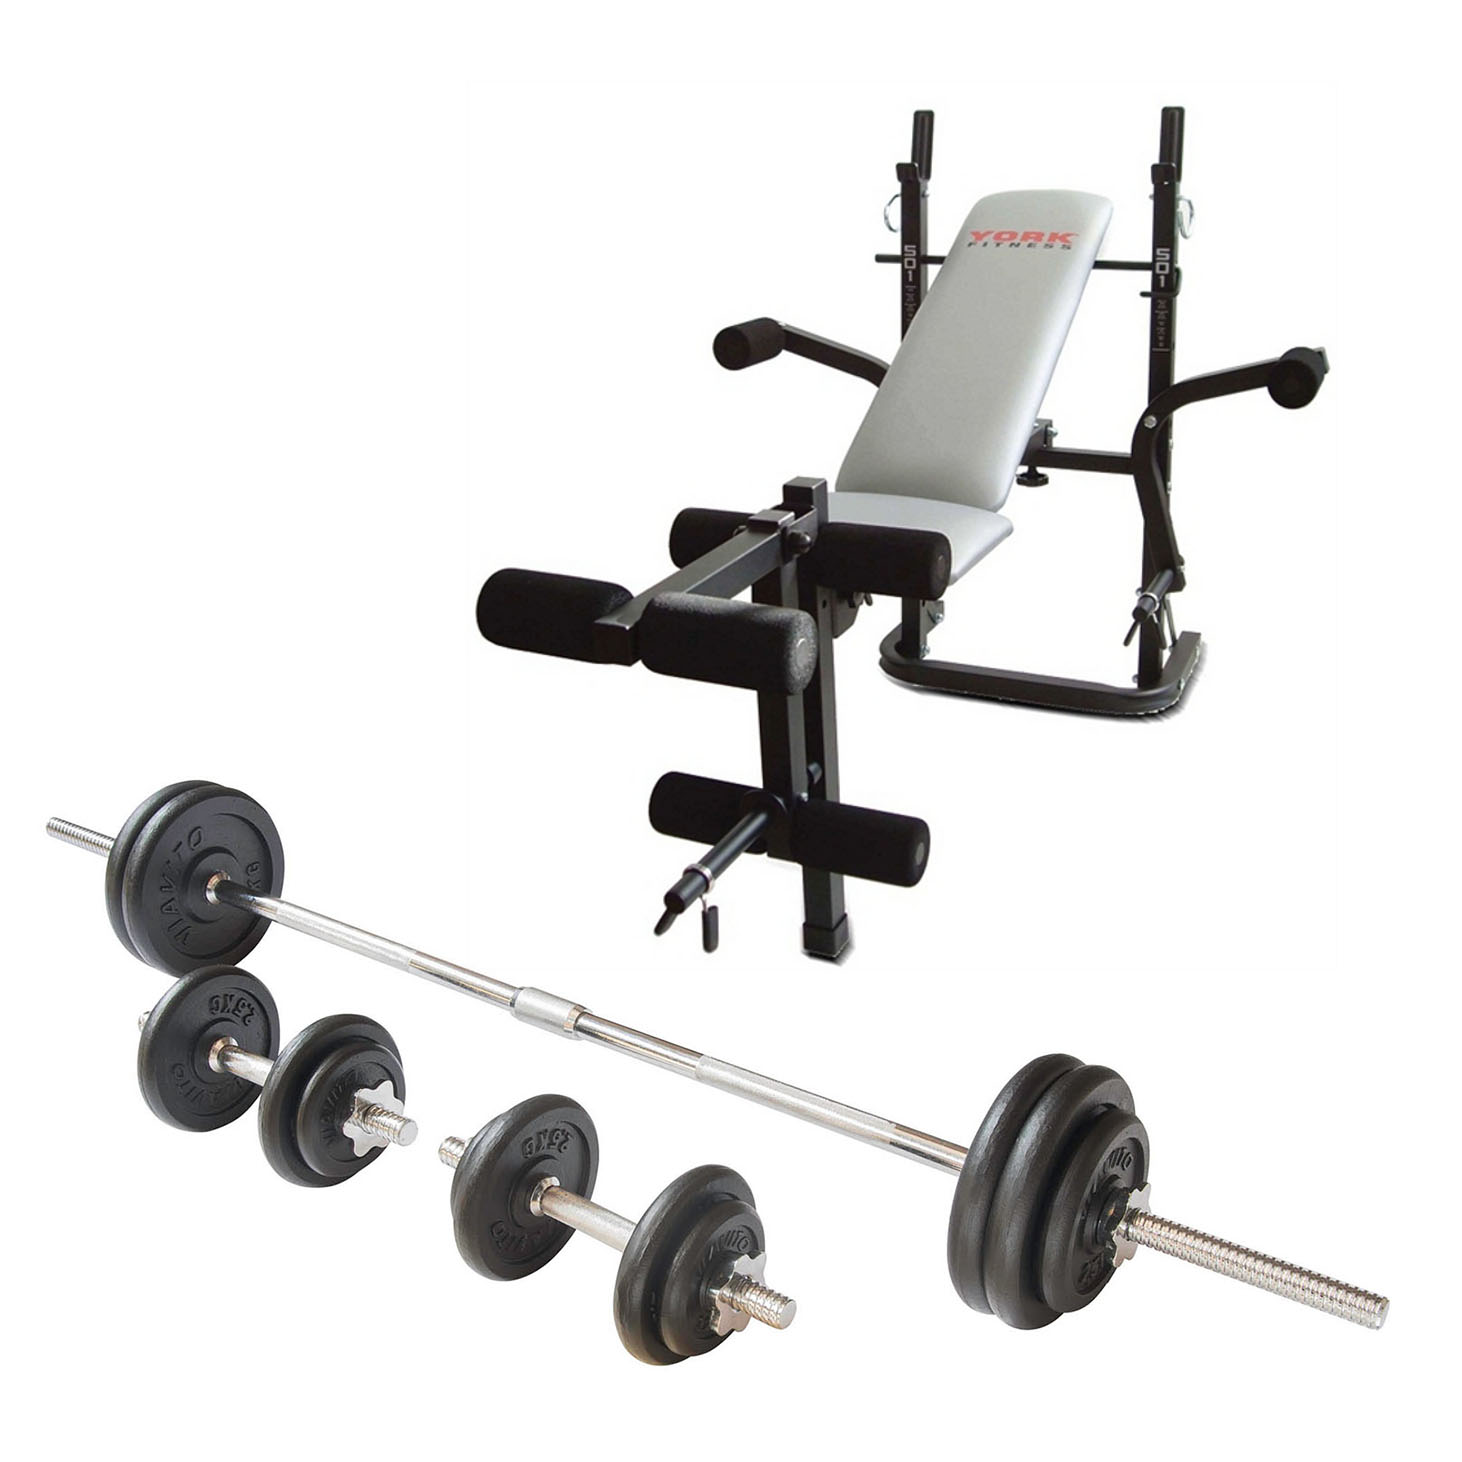 Buy Cheap Chrome Dumbbell Set Compare Weight Training Prices For Best Uk Deals